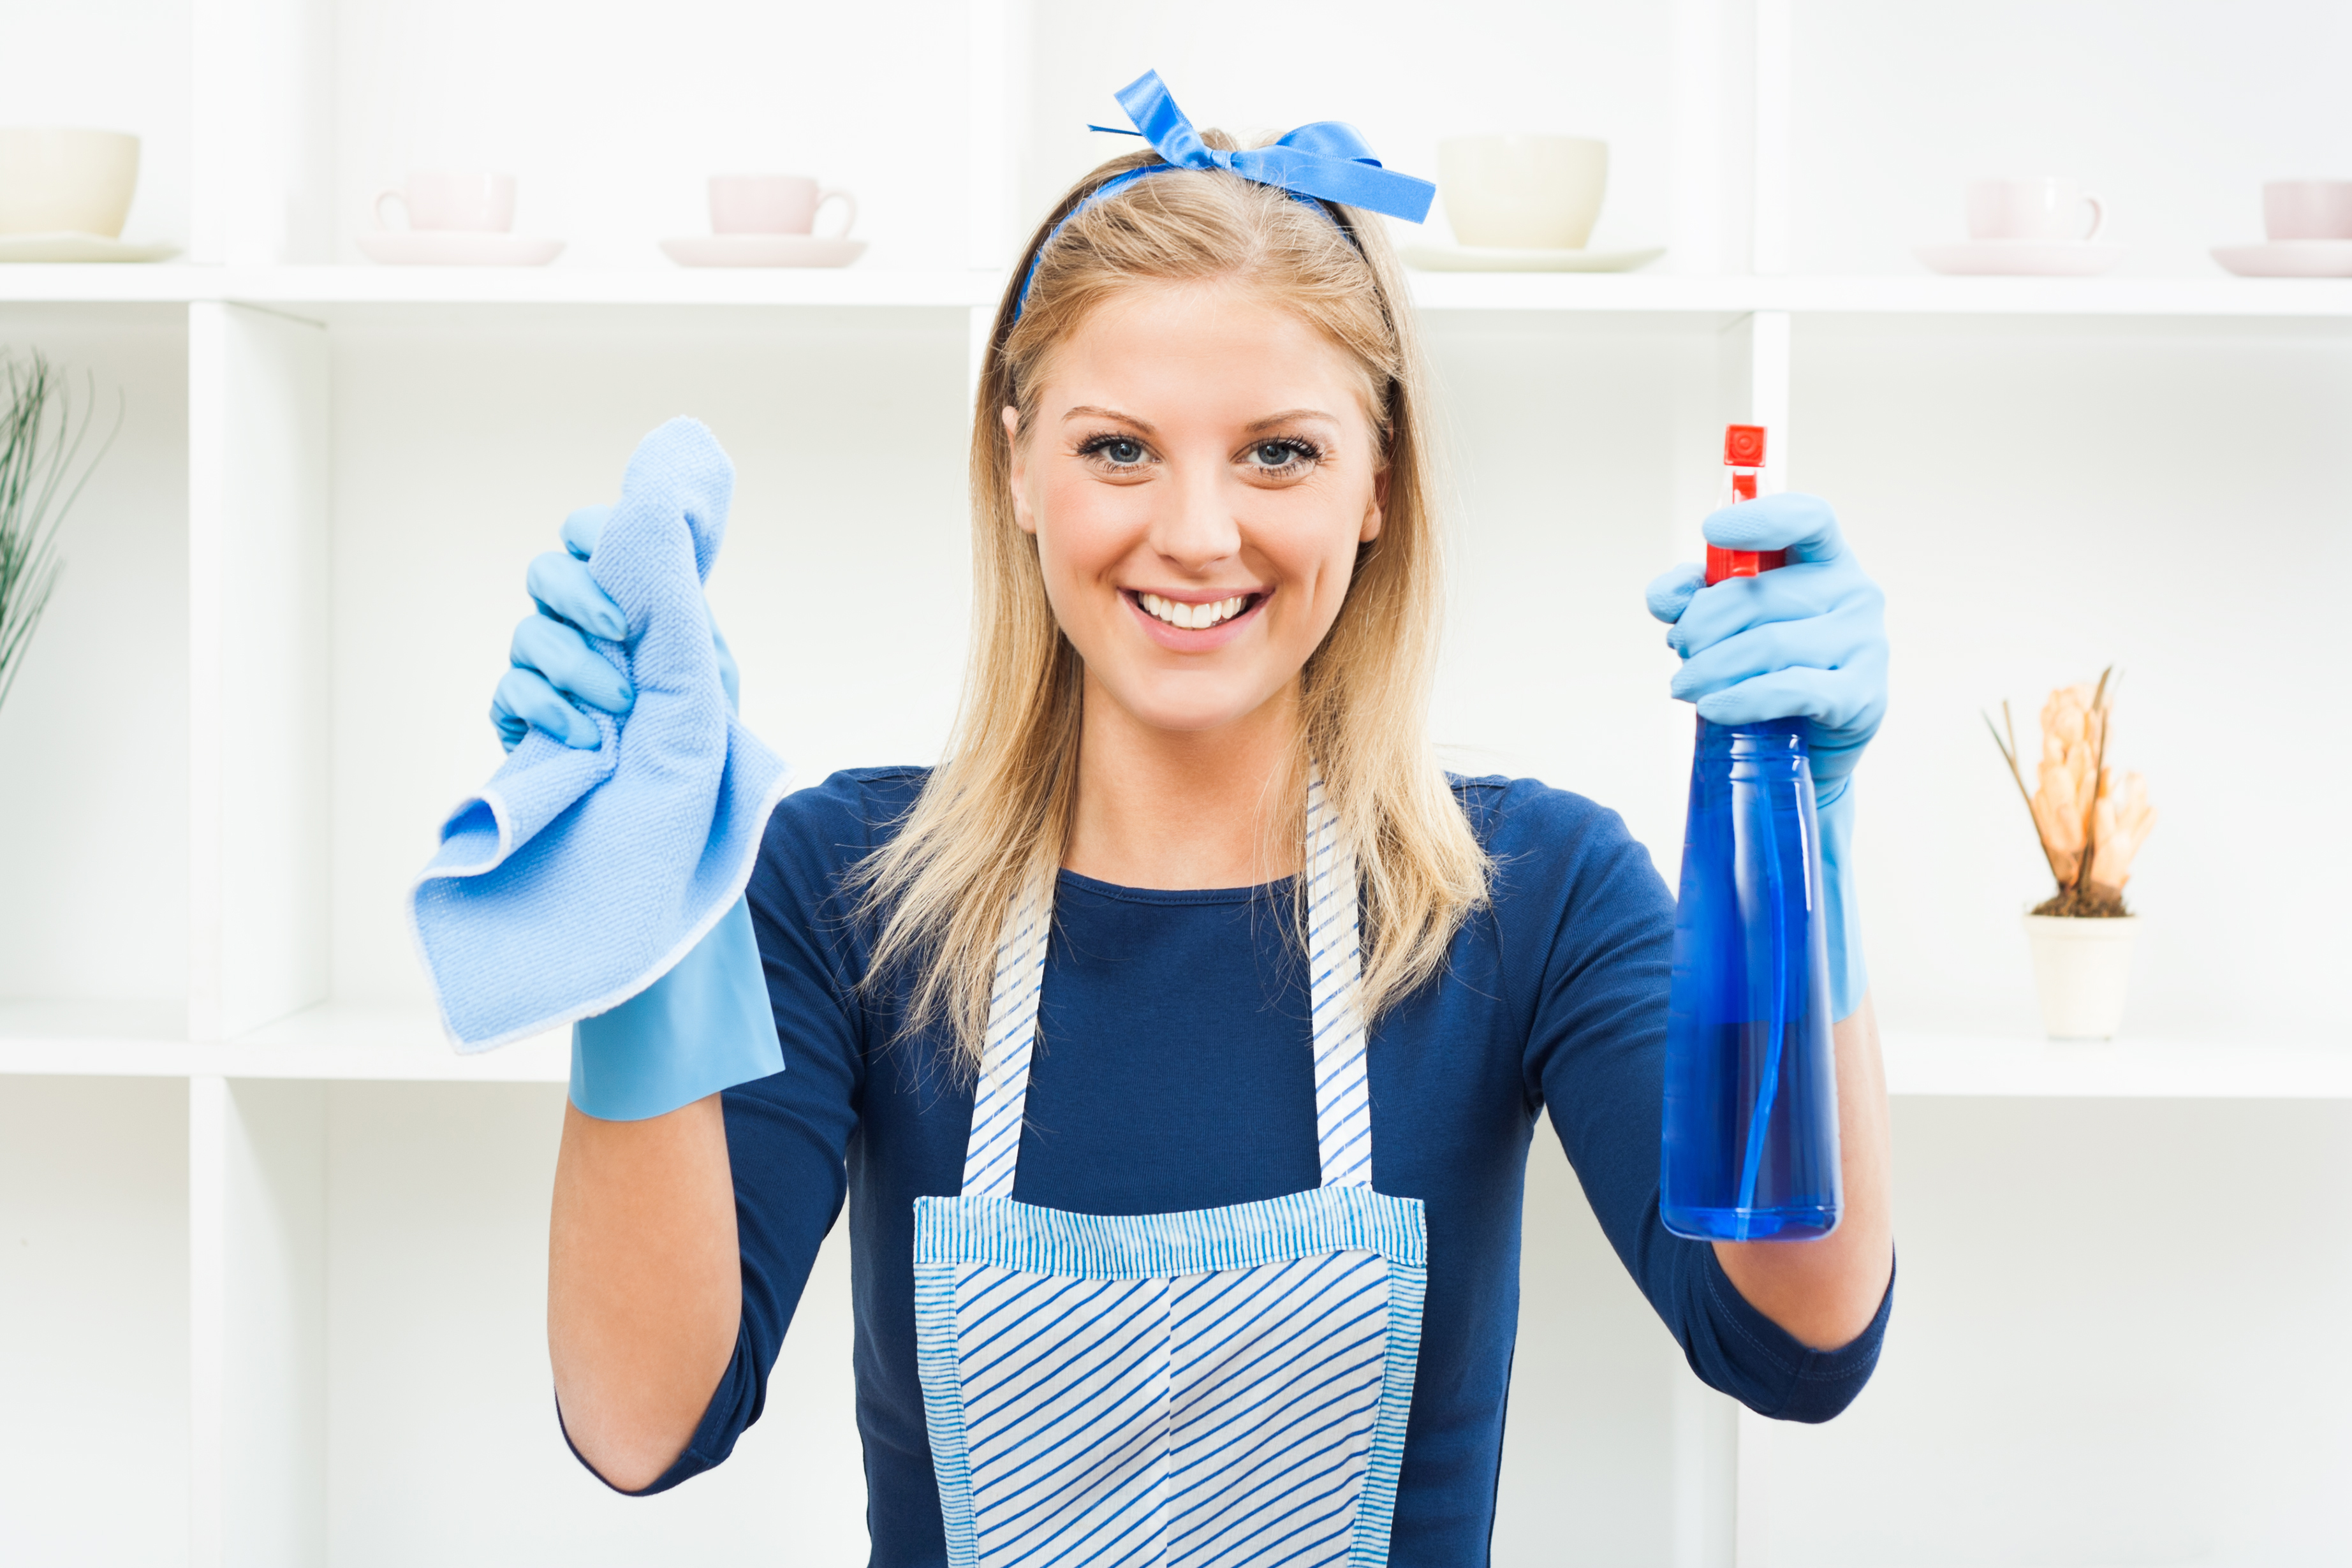 It's the Qualitythat mattersDomestic & Commercial Cleaning Services